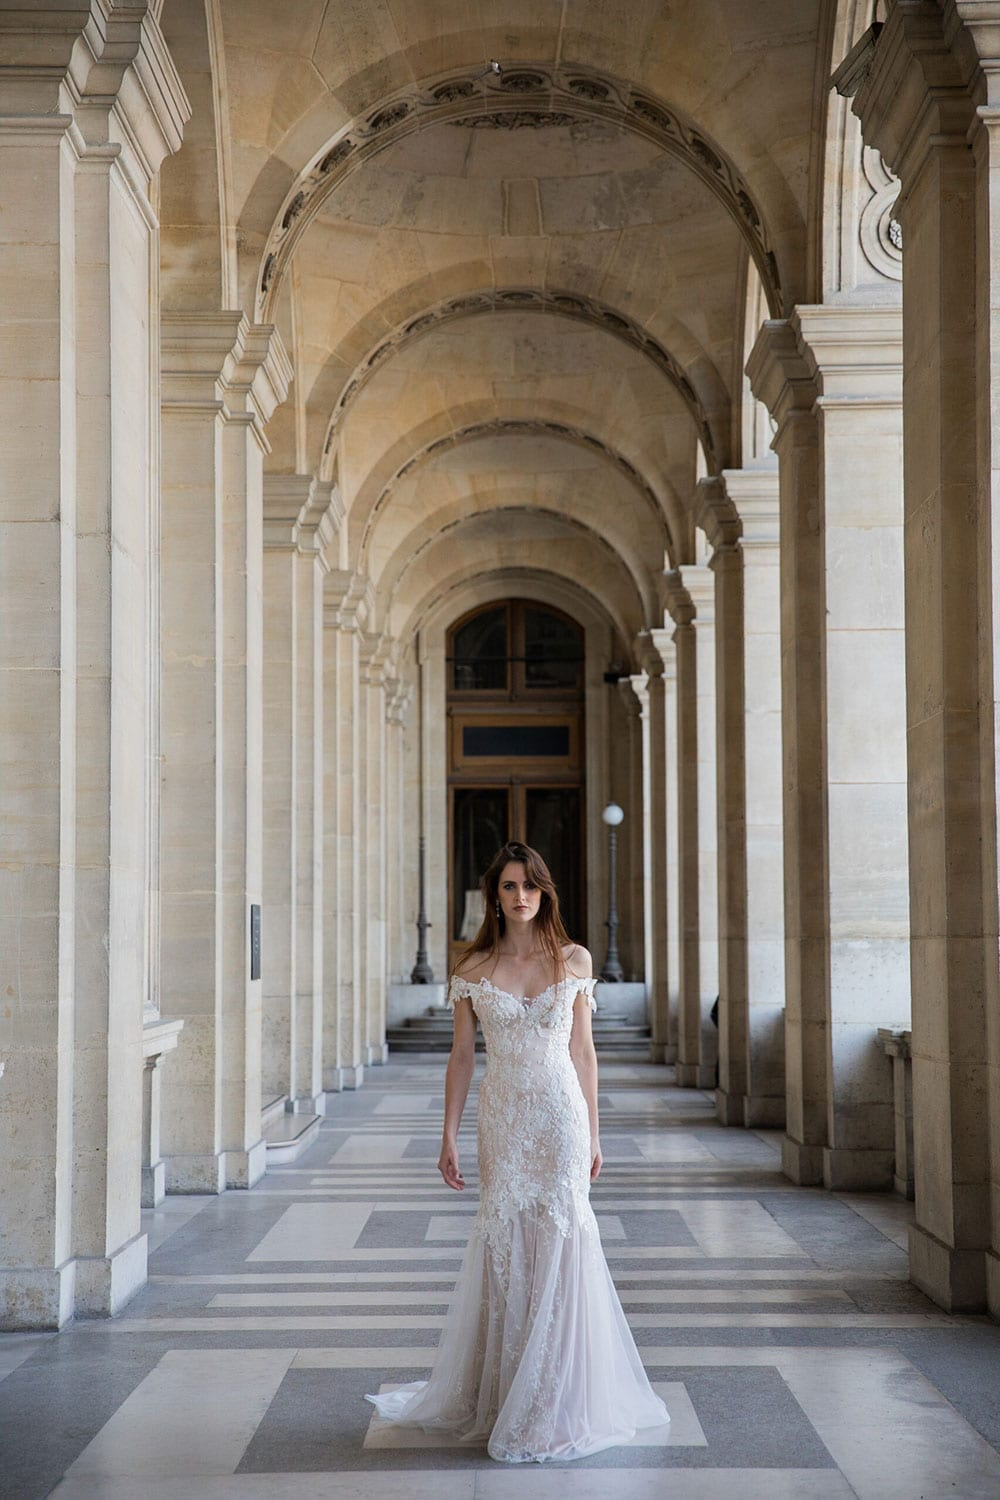 Model wearing Vinka Design Sashia Wedding Dress, an off-shoulder silk wedding dress with sheer lace back detail. This stunning gown features a fitted long line bodice and lace and soft tulle skirt. Worn walking through high archways in old building, Paris.